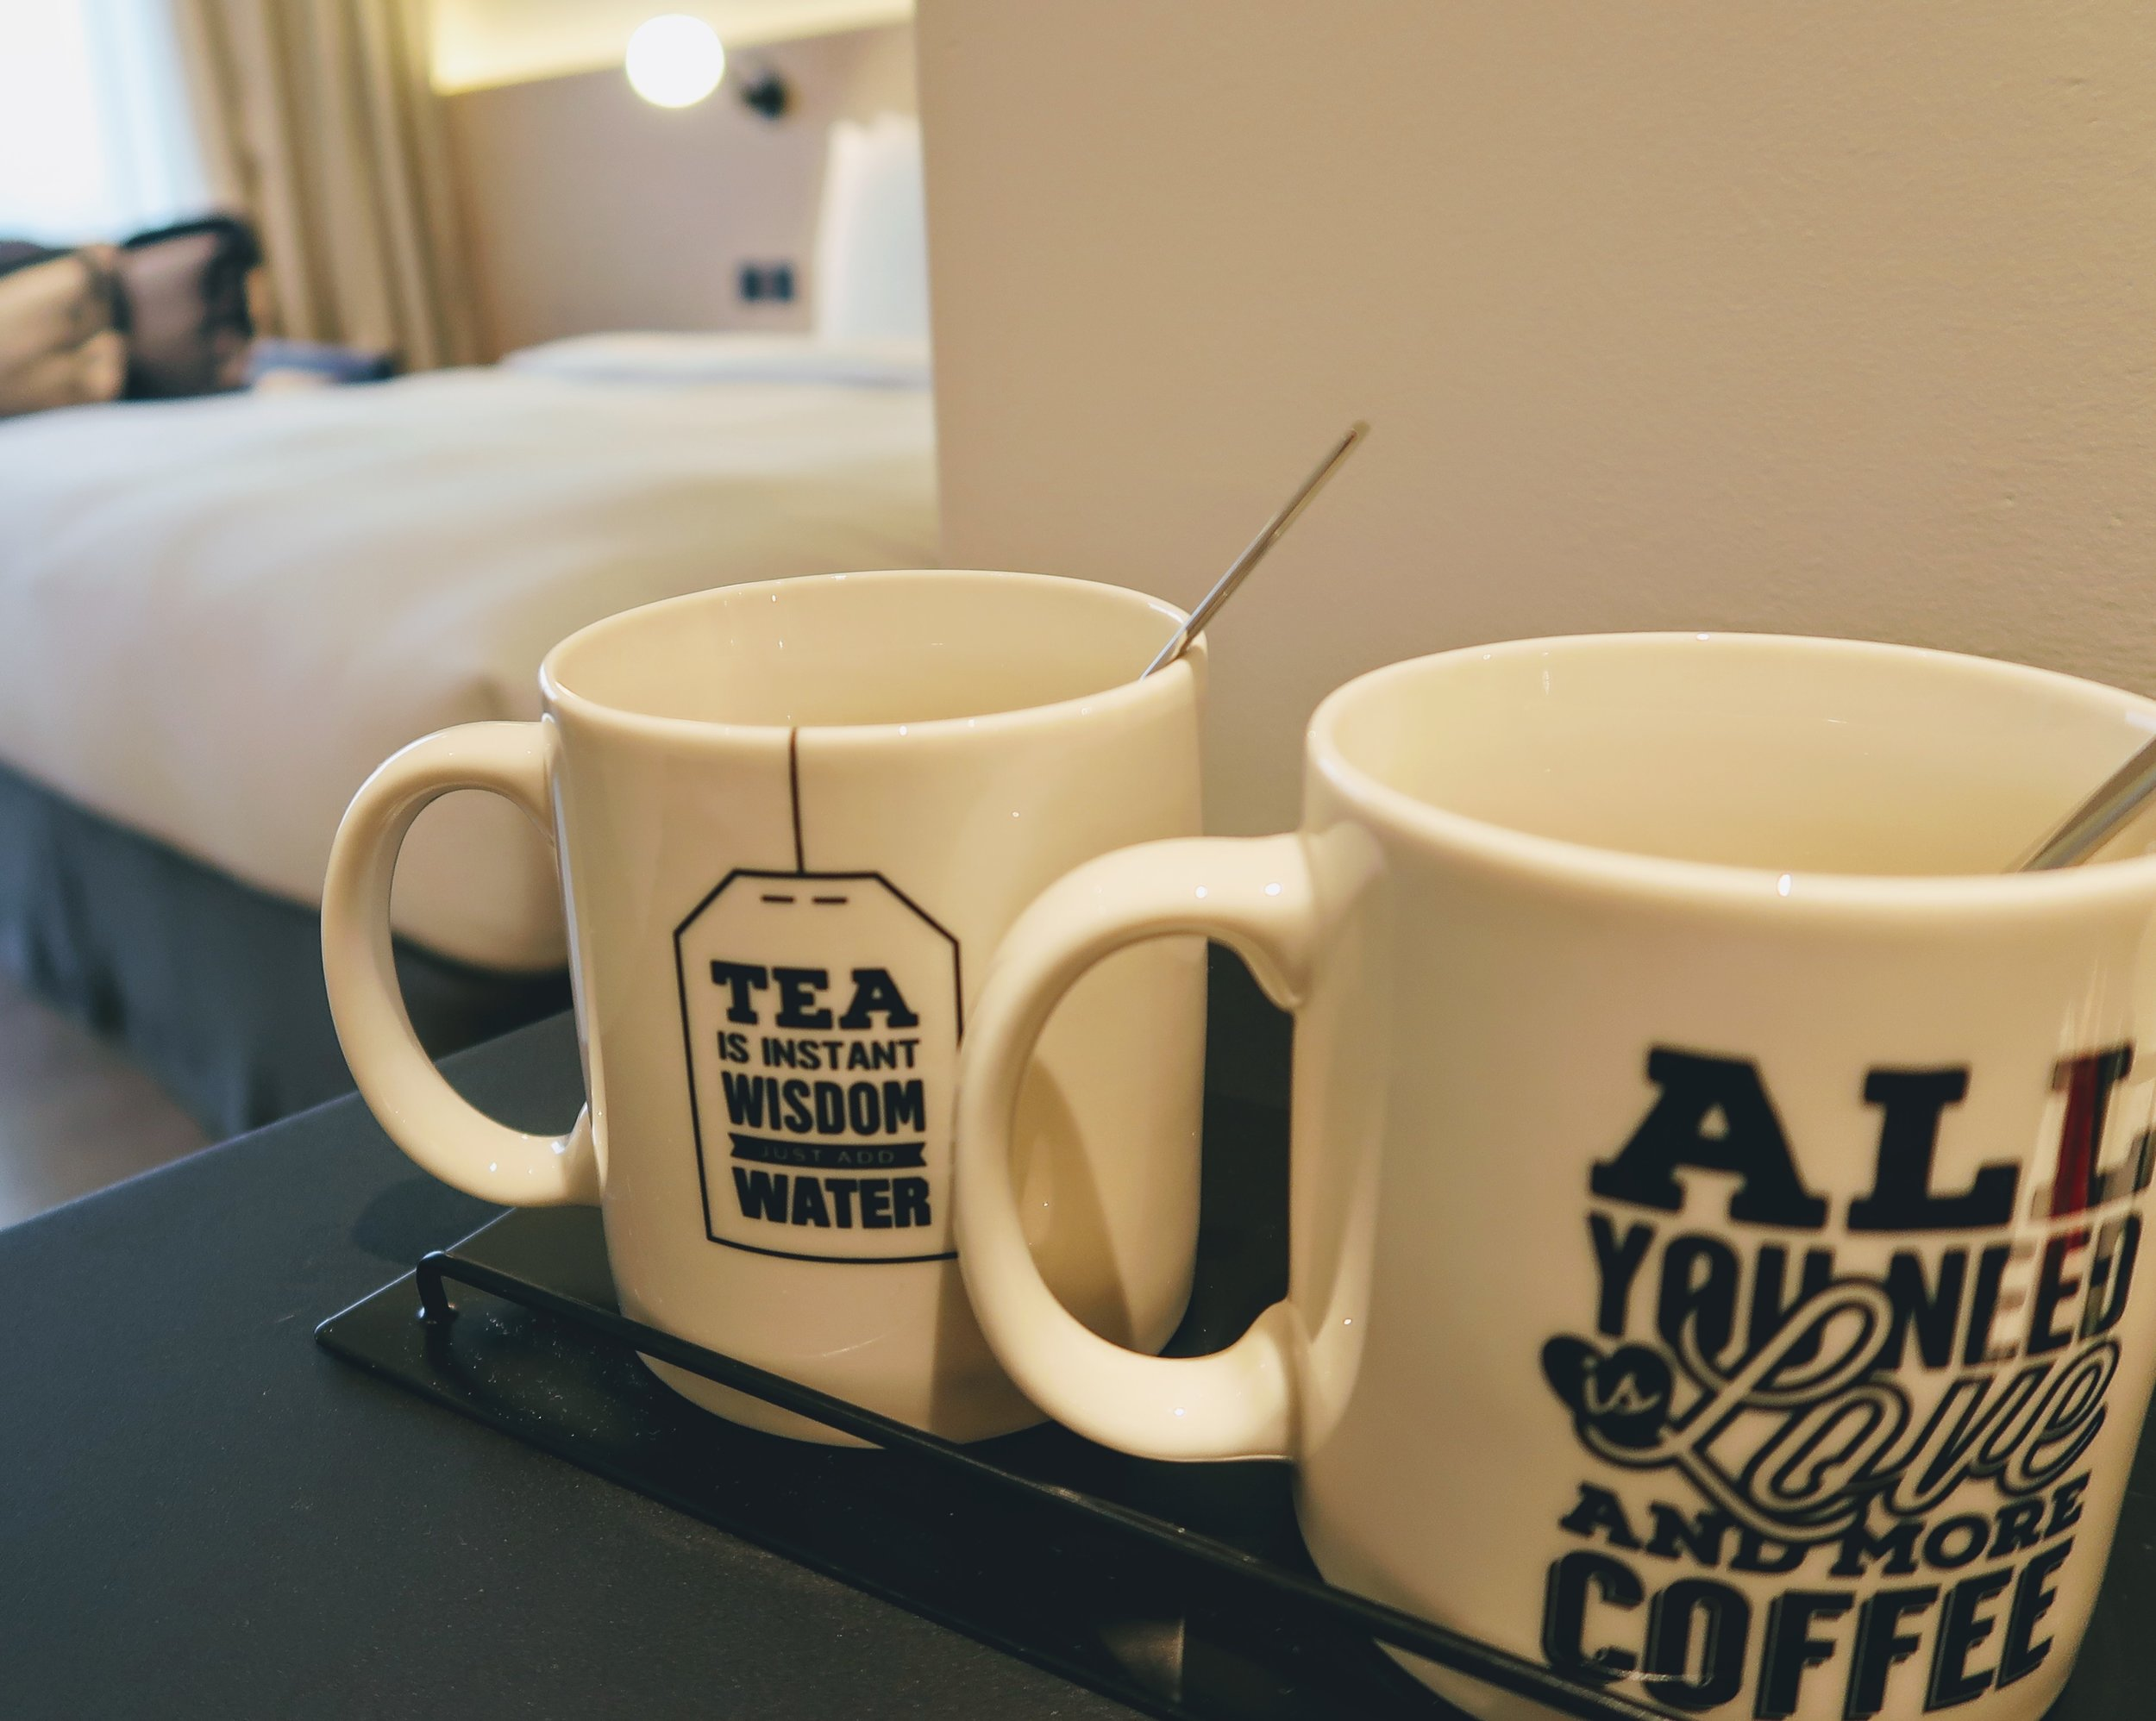 Love their coffee and tea cups in the room! I love it how one is for coffee and one is for tea in case one person doesn't drink the other. How thoughtful and cute!